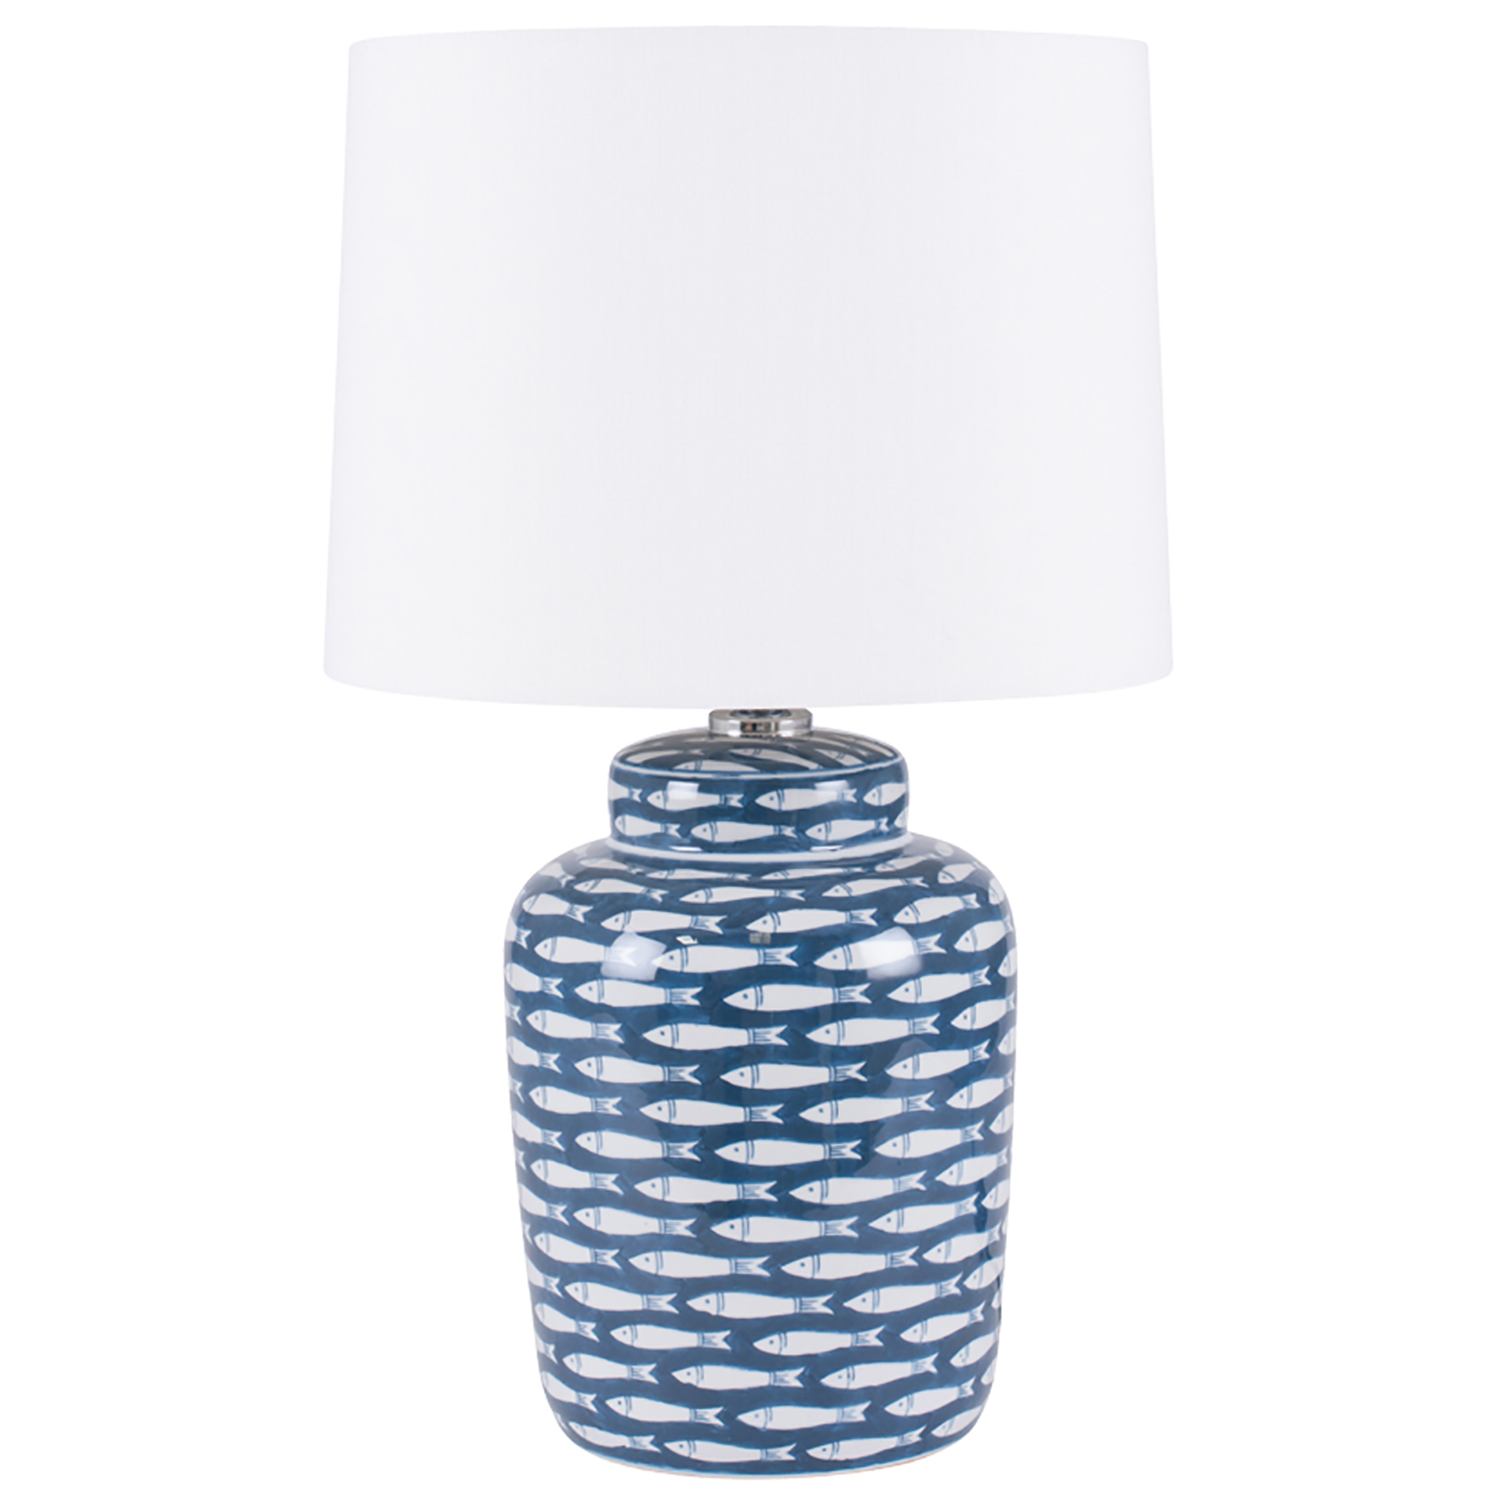 Image of Aimbry Fish Cermaic Table Lamp, Blue & White